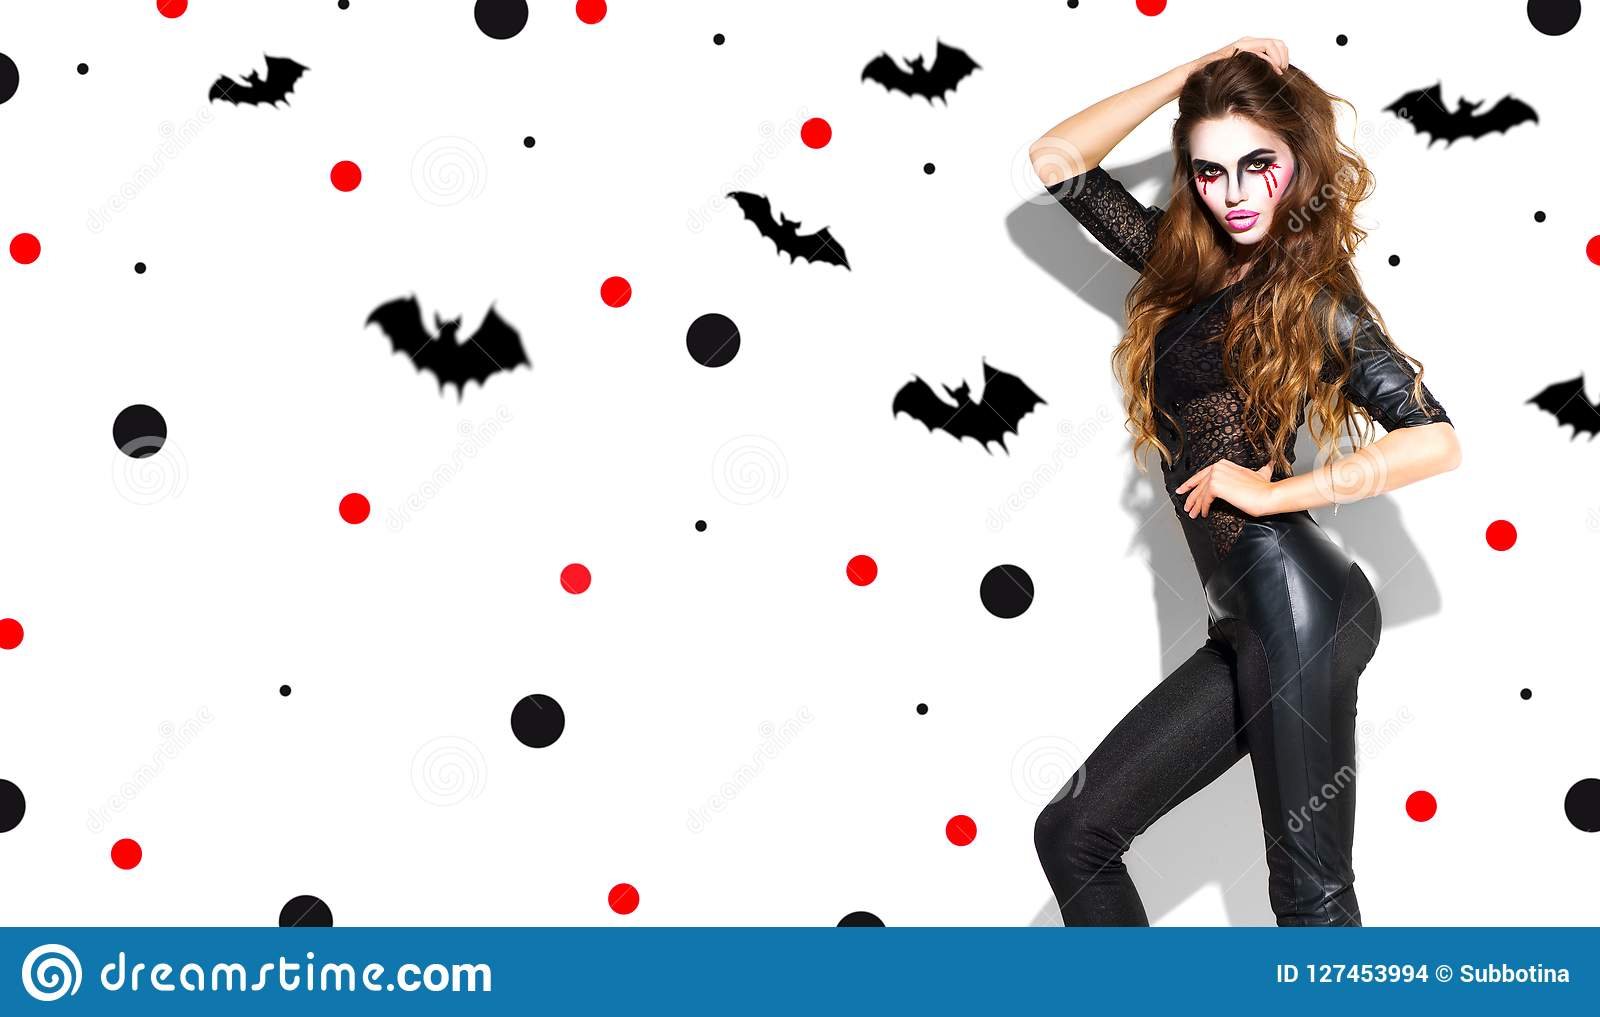 Halloween. Holiday party girl. Beautiful young woman with bright vampire makeup and long hair posing in witches costume